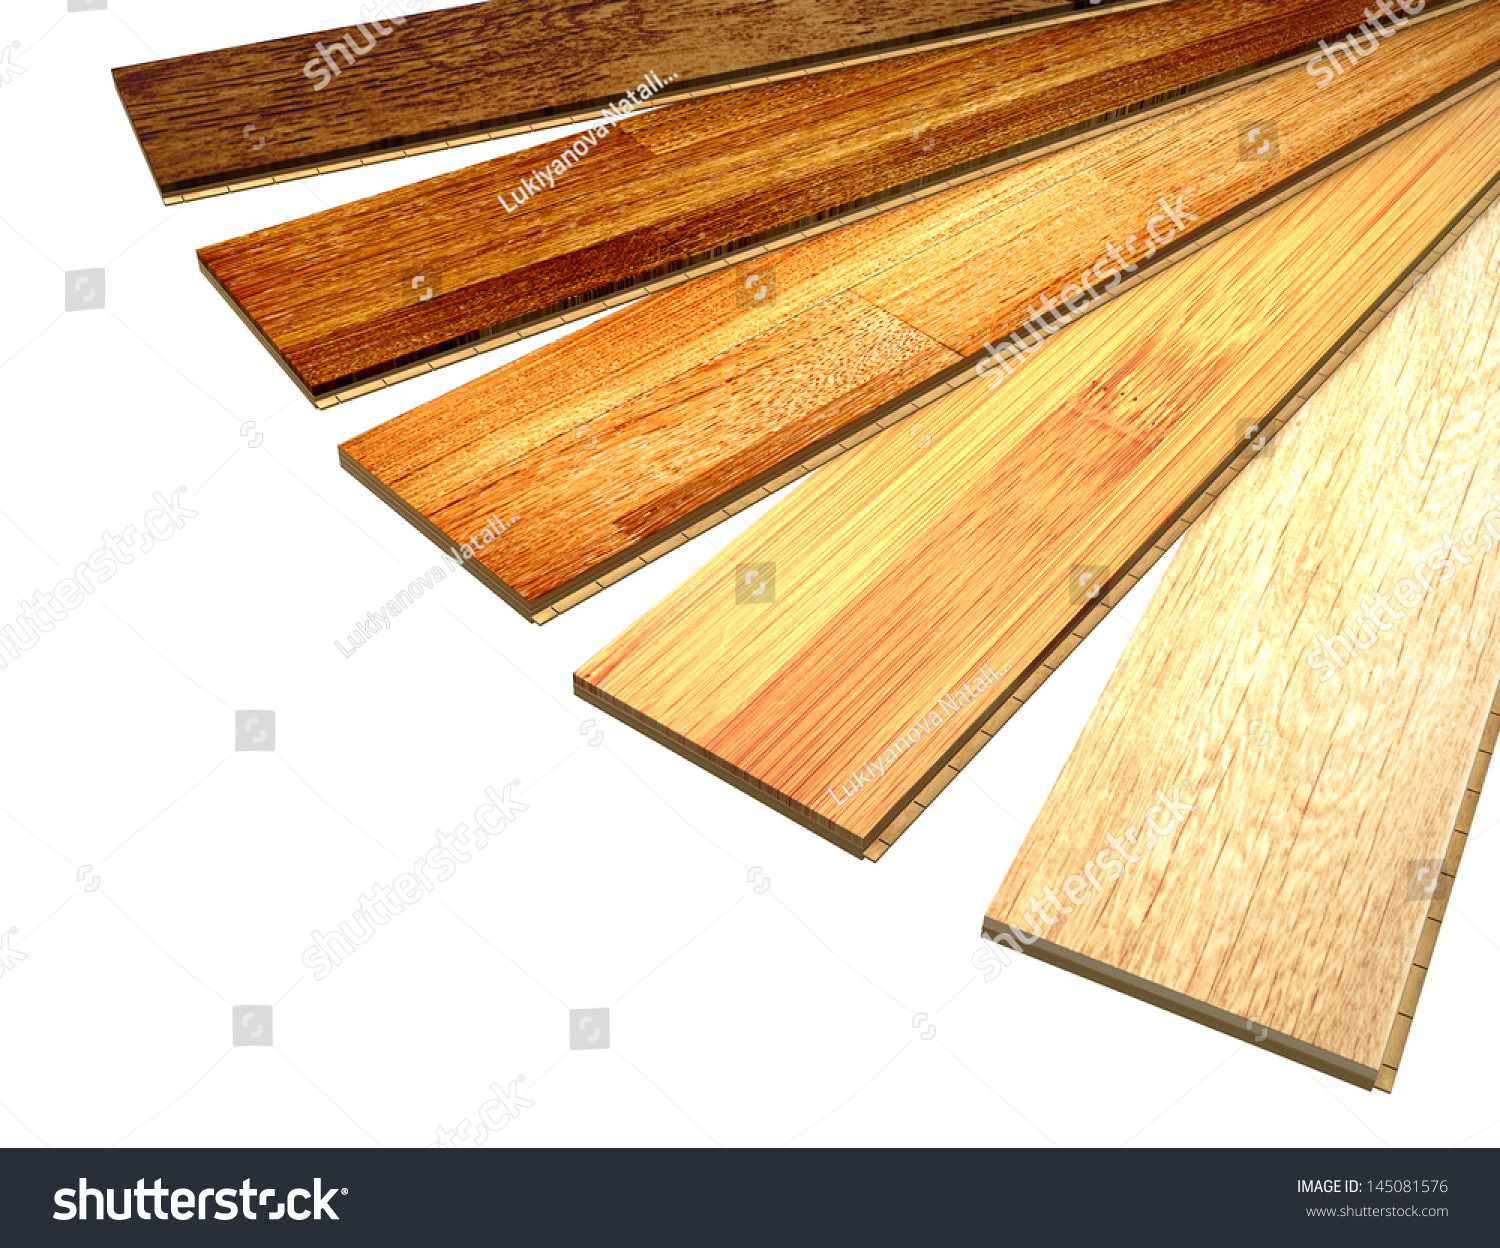 new oak parquet of different colors isolated over white stock photo 145081576 shutterstock. Black Bedroom Furniture Sets. Home Design Ideas